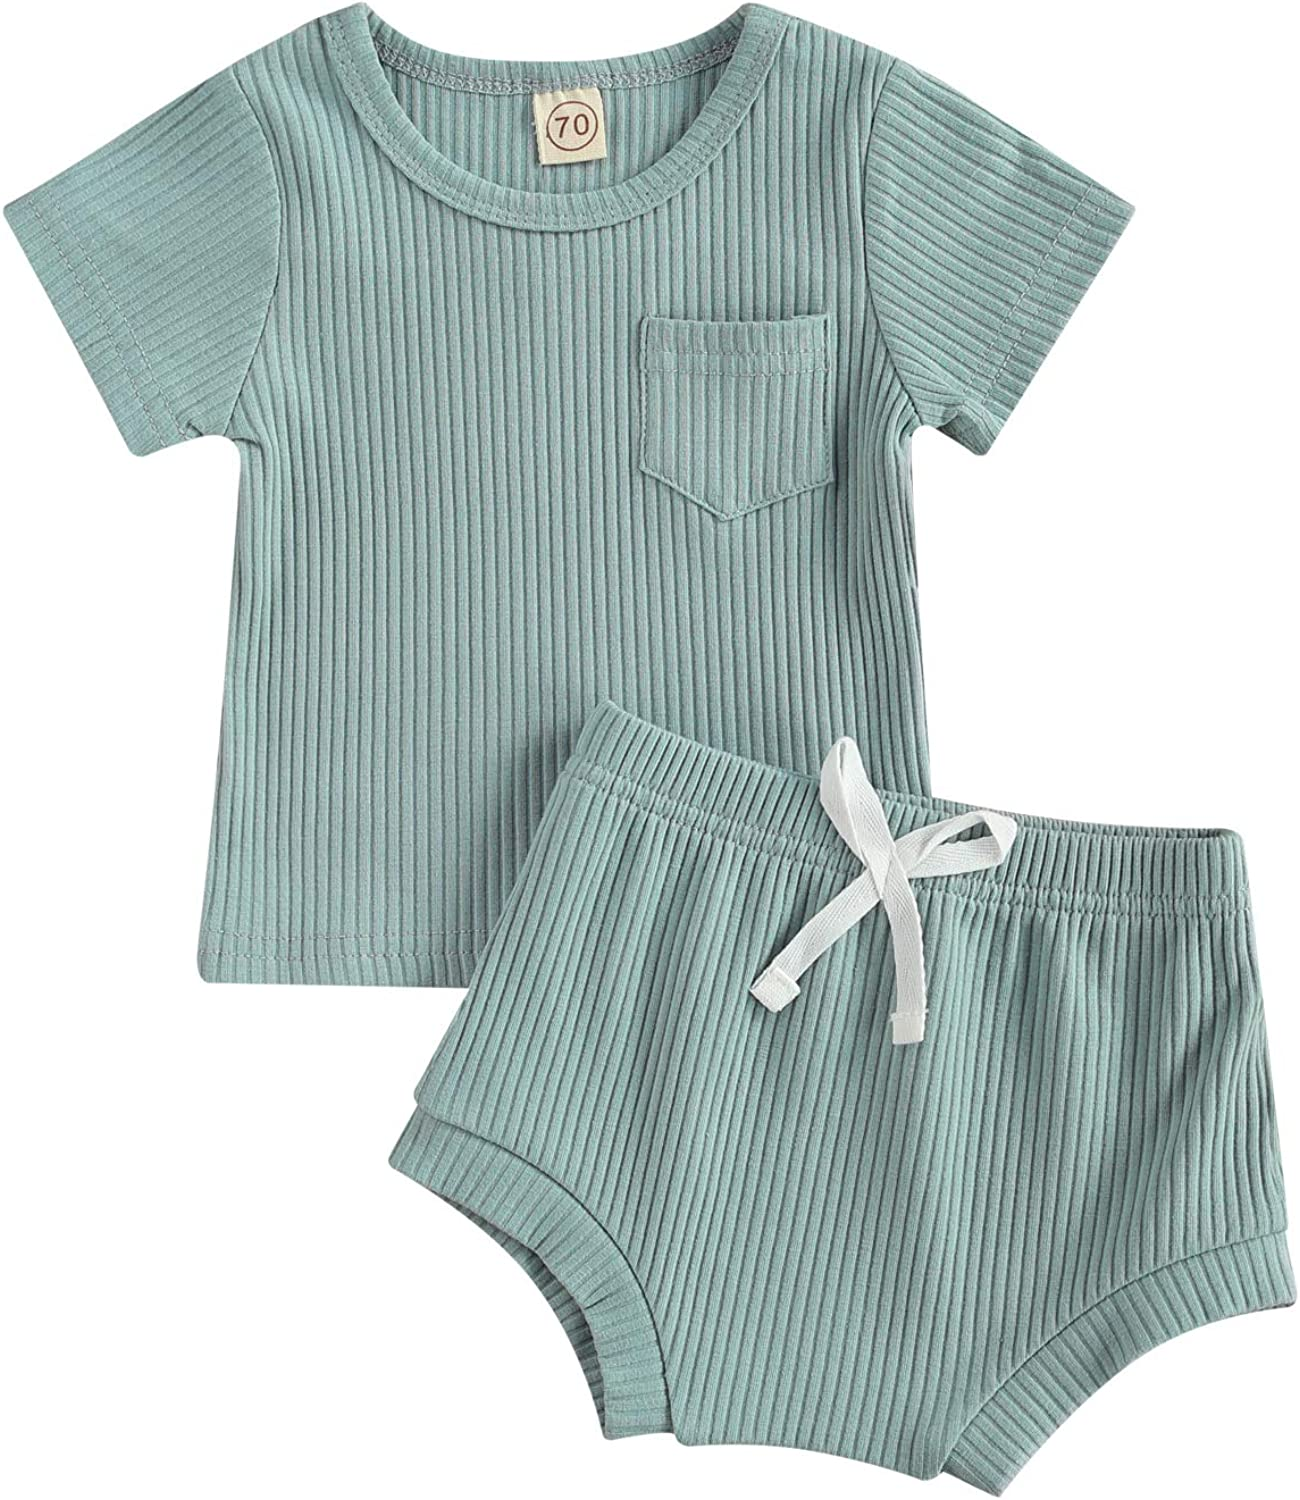 Infant Toddler Baby Boy Summer Outfit Short Sleeve Vest Tank Tops with Shorts Pants Set 2Pcs Clothes Set